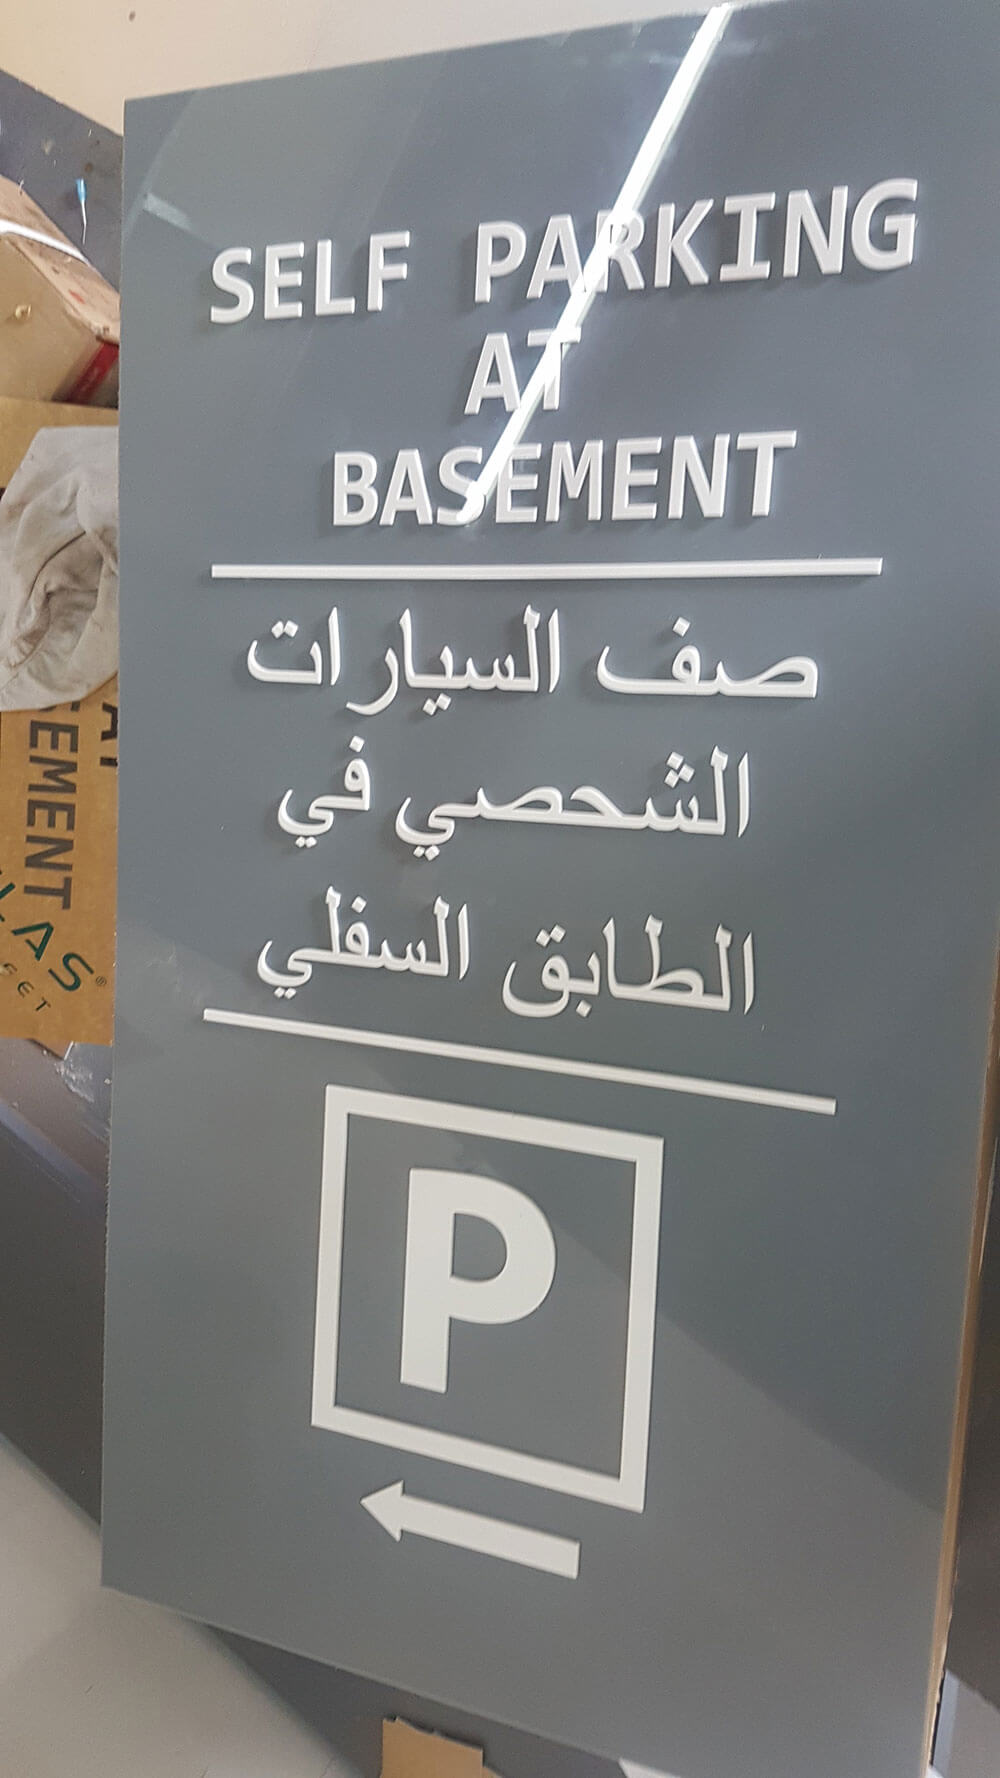 SIGNAGE AND GRAPHICS